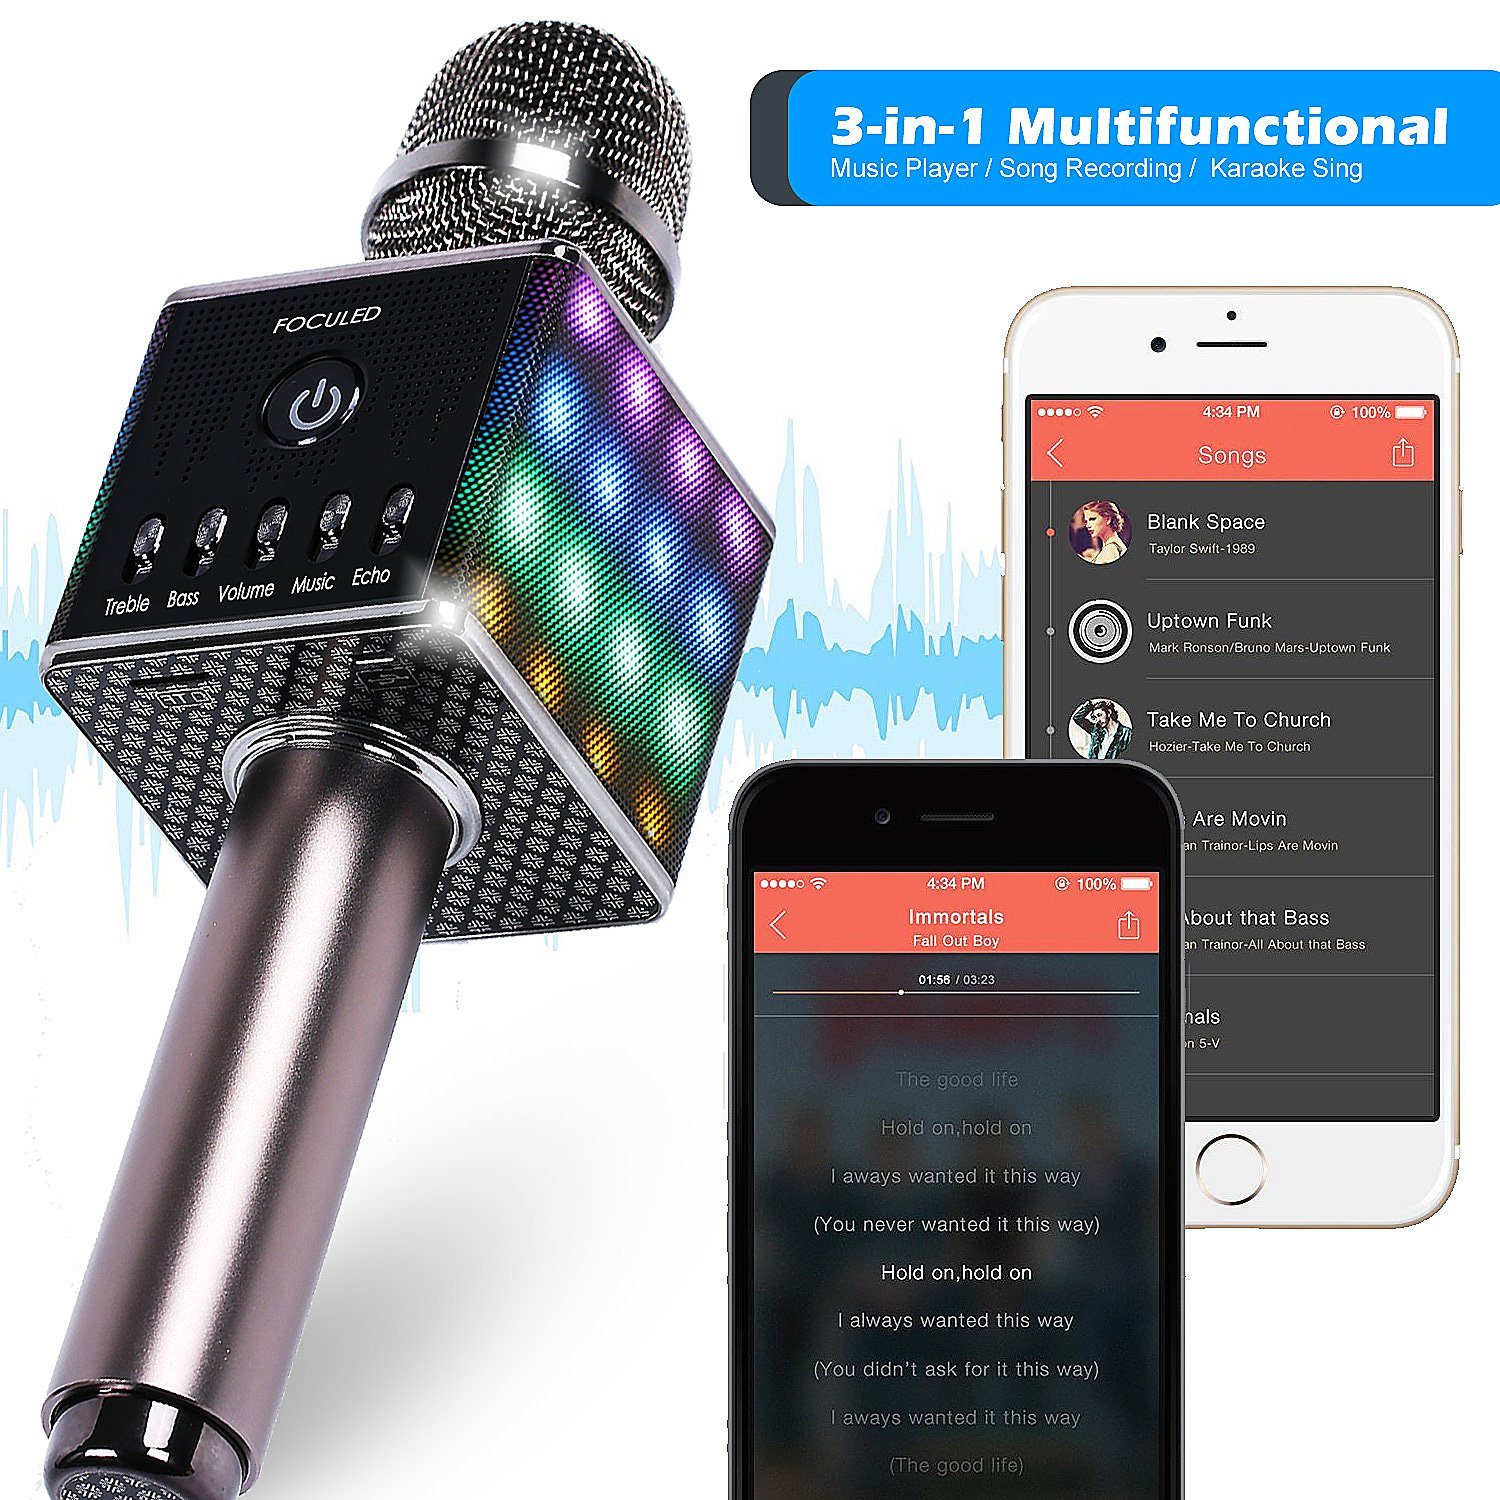 Portable Wireless Bluetooth Karaoke Microphone with LED lights, Built-in HIFI Dual-Speaker 10W and 2600mAH battery capacity, Handheld karaoke Mic Speaker Machine for Home KTV Birthday Party by FOCULED (Image #5)